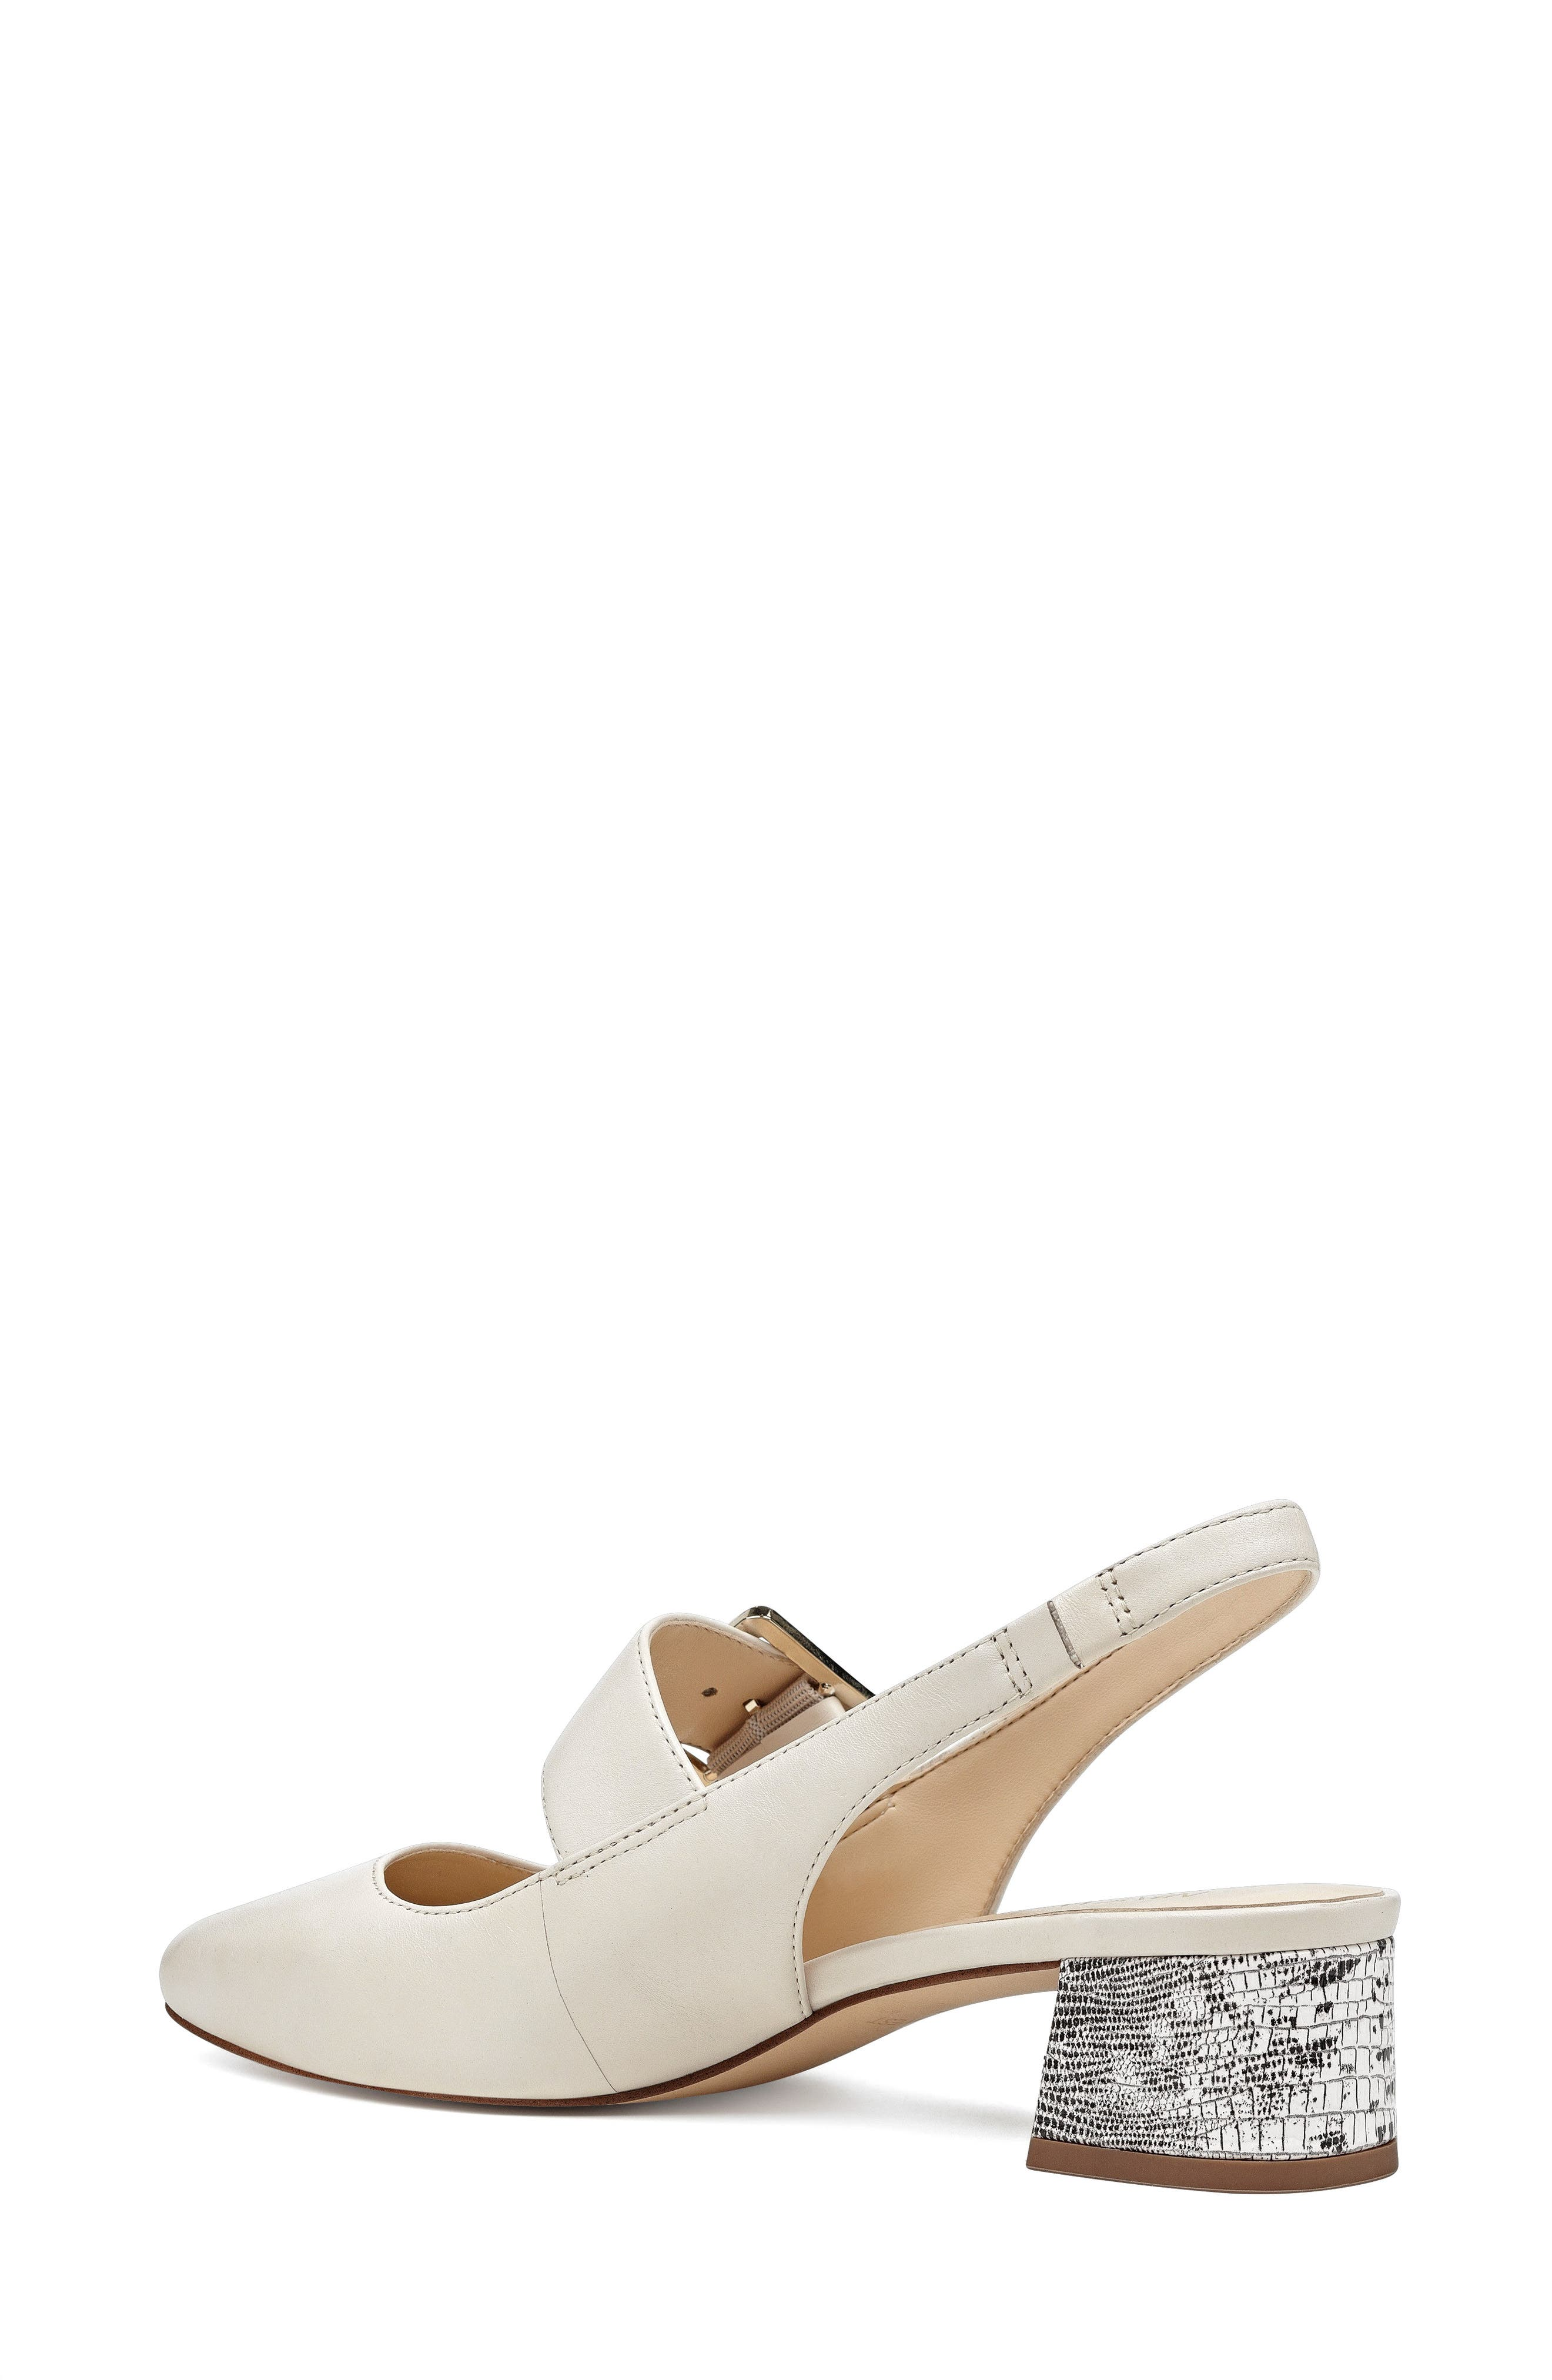 Wendor Slingback Pump,                             Alternate thumbnail 2, color,                             Off White Leather